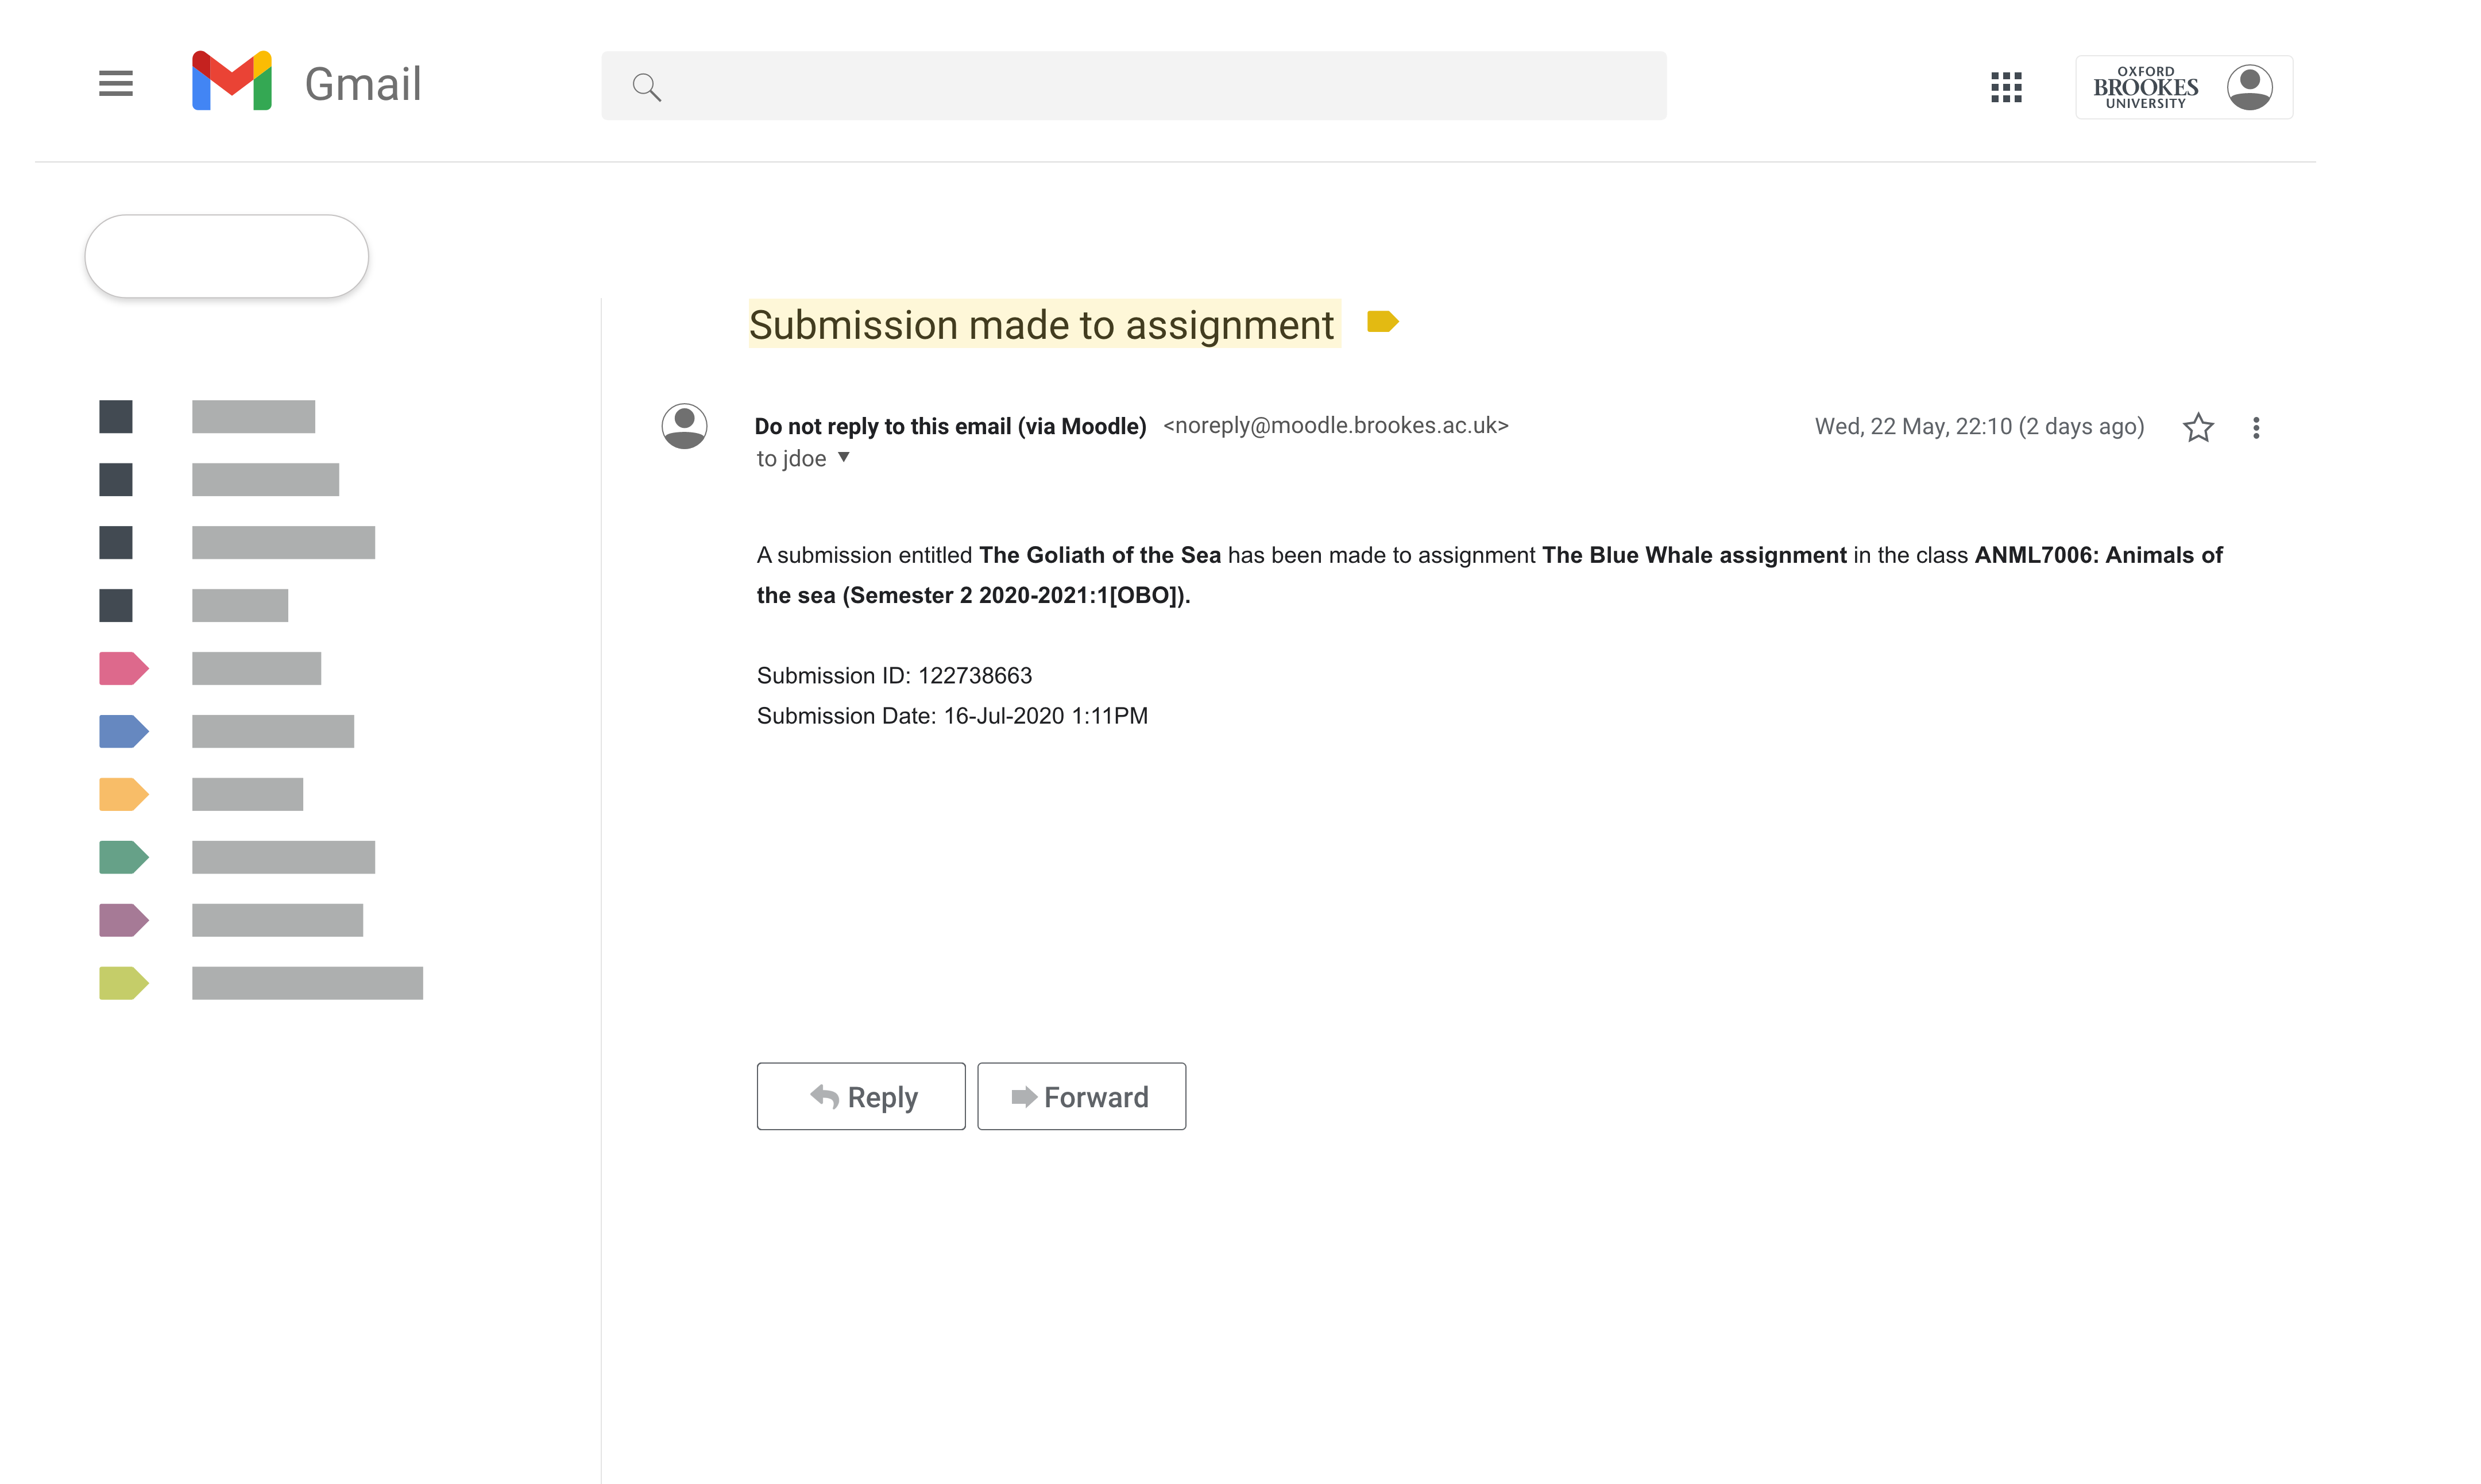 """Gmail screenshot that shows an example of an email with a subject line highlighted in yellow that reads """"Submission made to assignment"""" and body text that reads """"A submission entitled The Goliath of the Sea has been made to assignment The Blue Whale assignment in the class ANML7006: Animals of the sea (Semester 2 2020-2021:1[OBO])""""."""